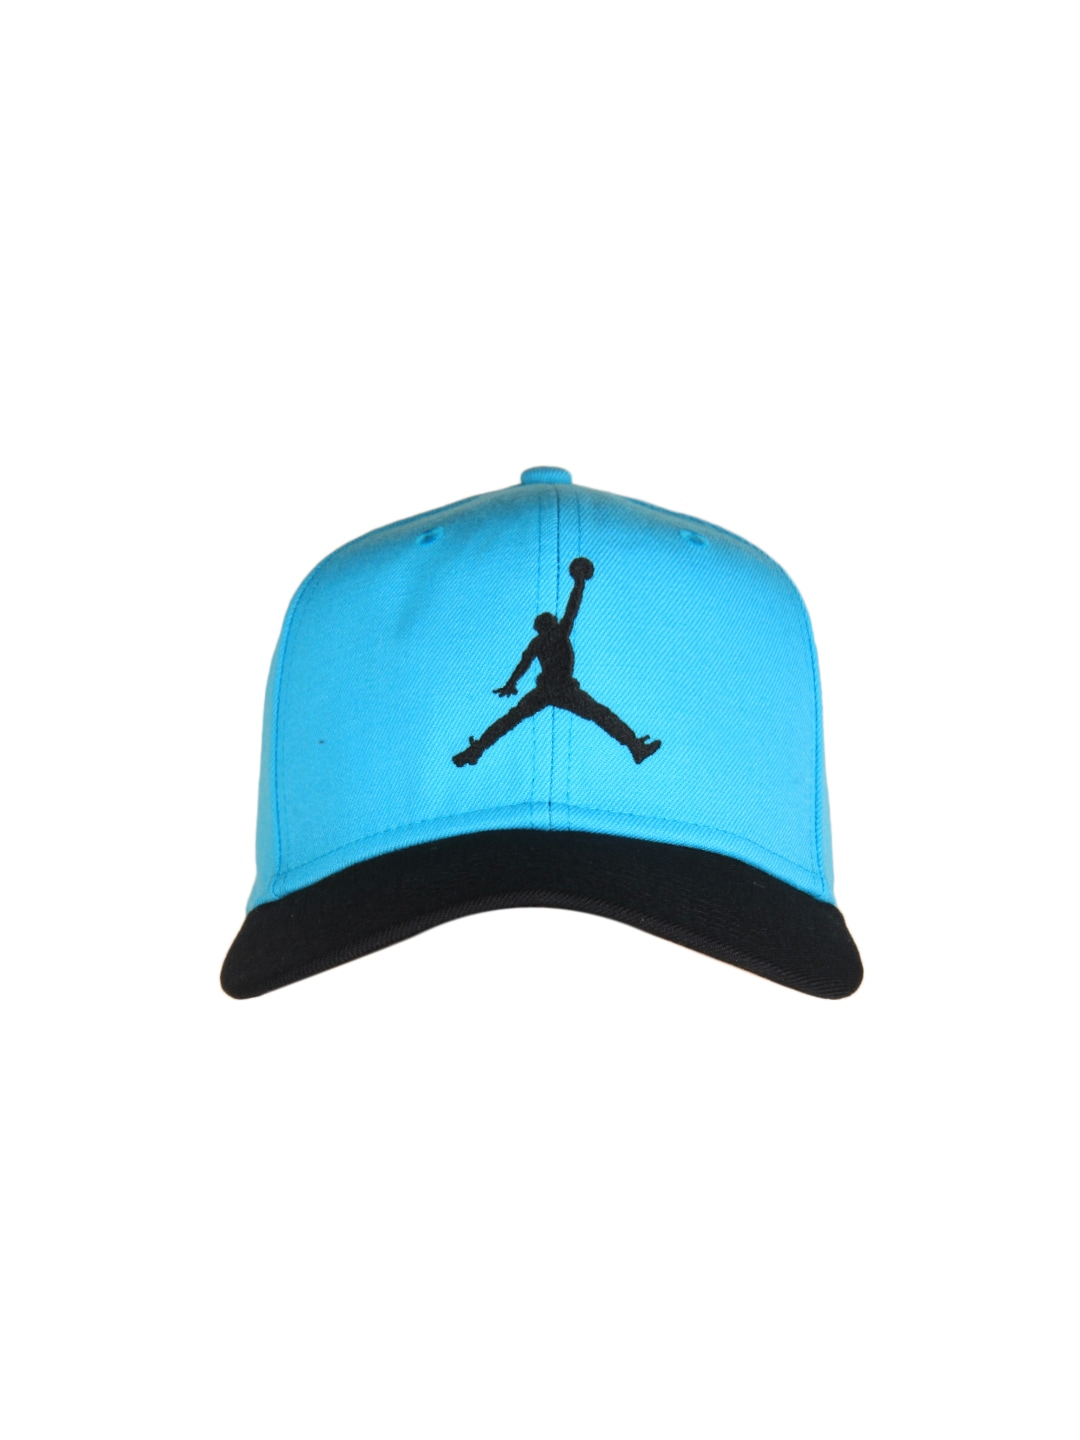 67a1167a072ea4 Nike 513405-456 Unisex Blue And Black Jordan True Jumpman Snapback Cap-  Price in India